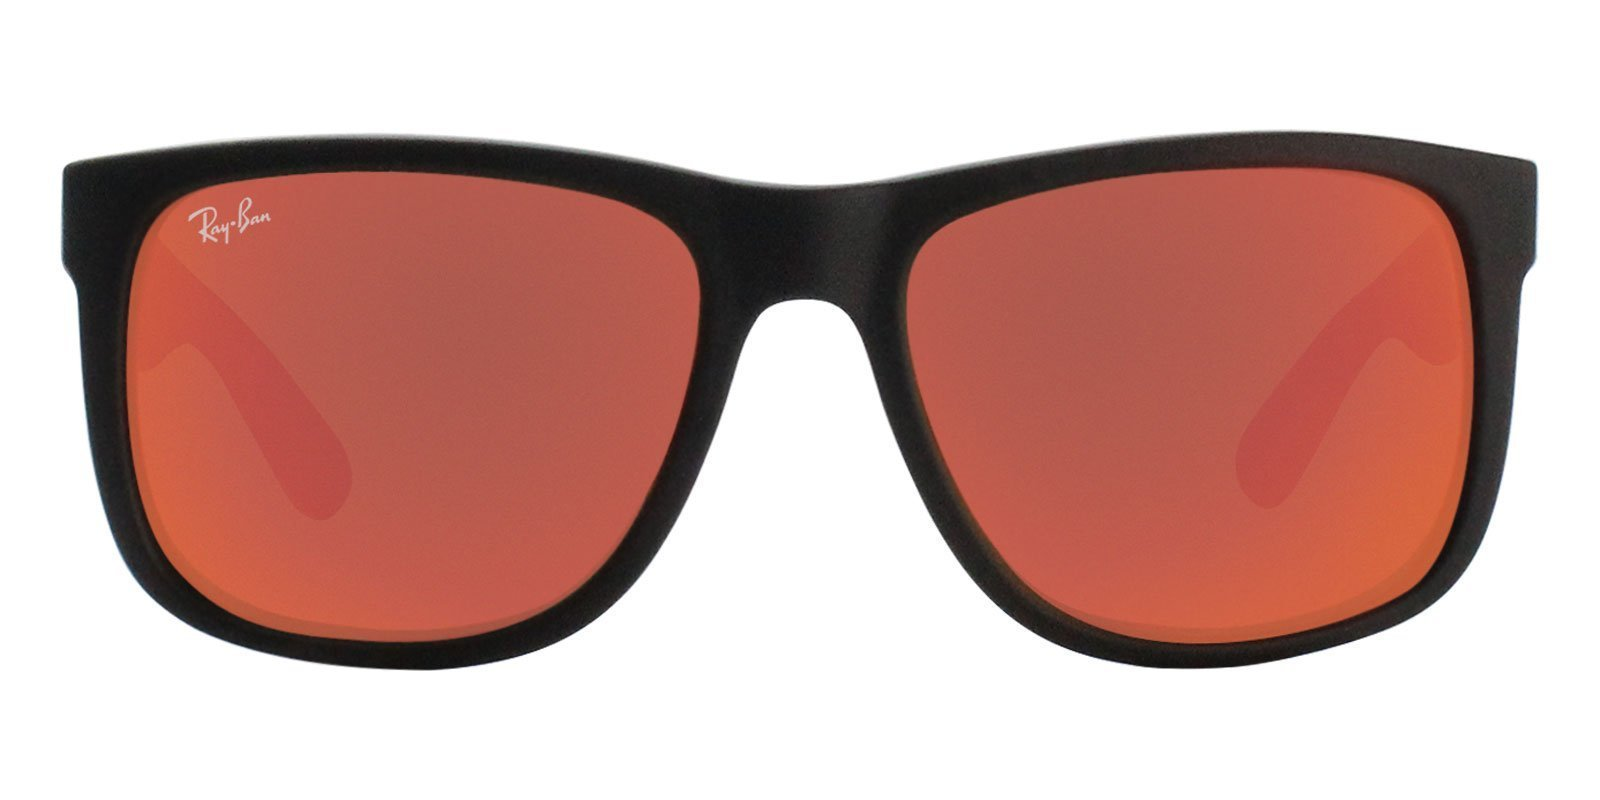 2fdd2a7cd7 ... switzerland ray ban justin rb4165 black red mirrored lens sunglasses  shadesdaddy 97f4e cb1a3